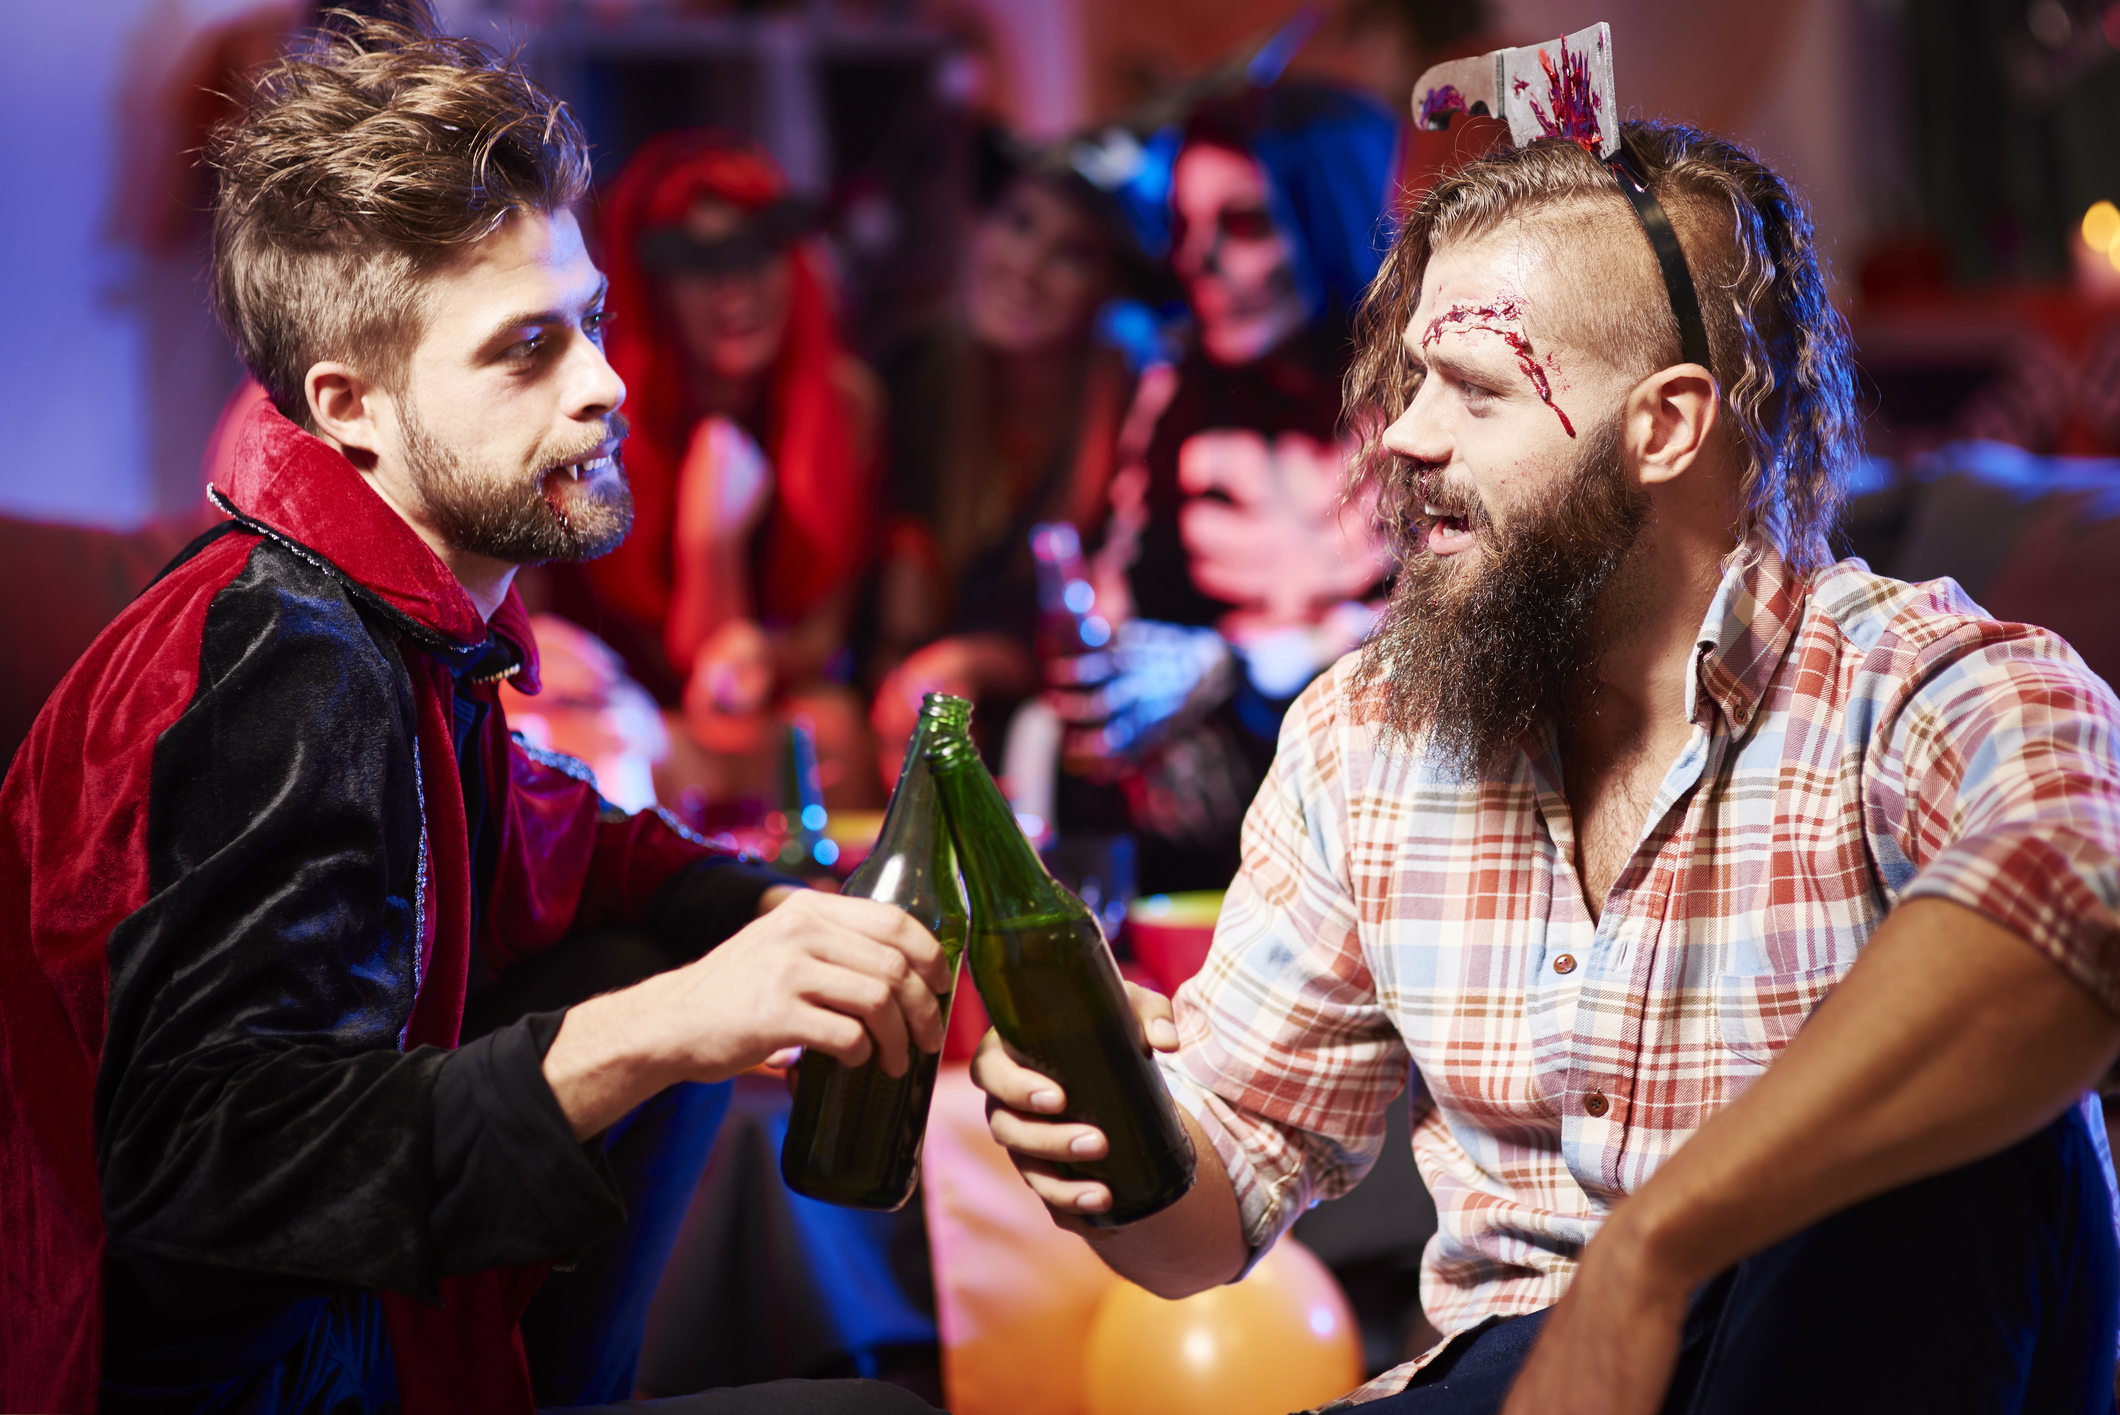 Spooky patrons take over Emporium Arcade Bar's Haunted Hotel this week.